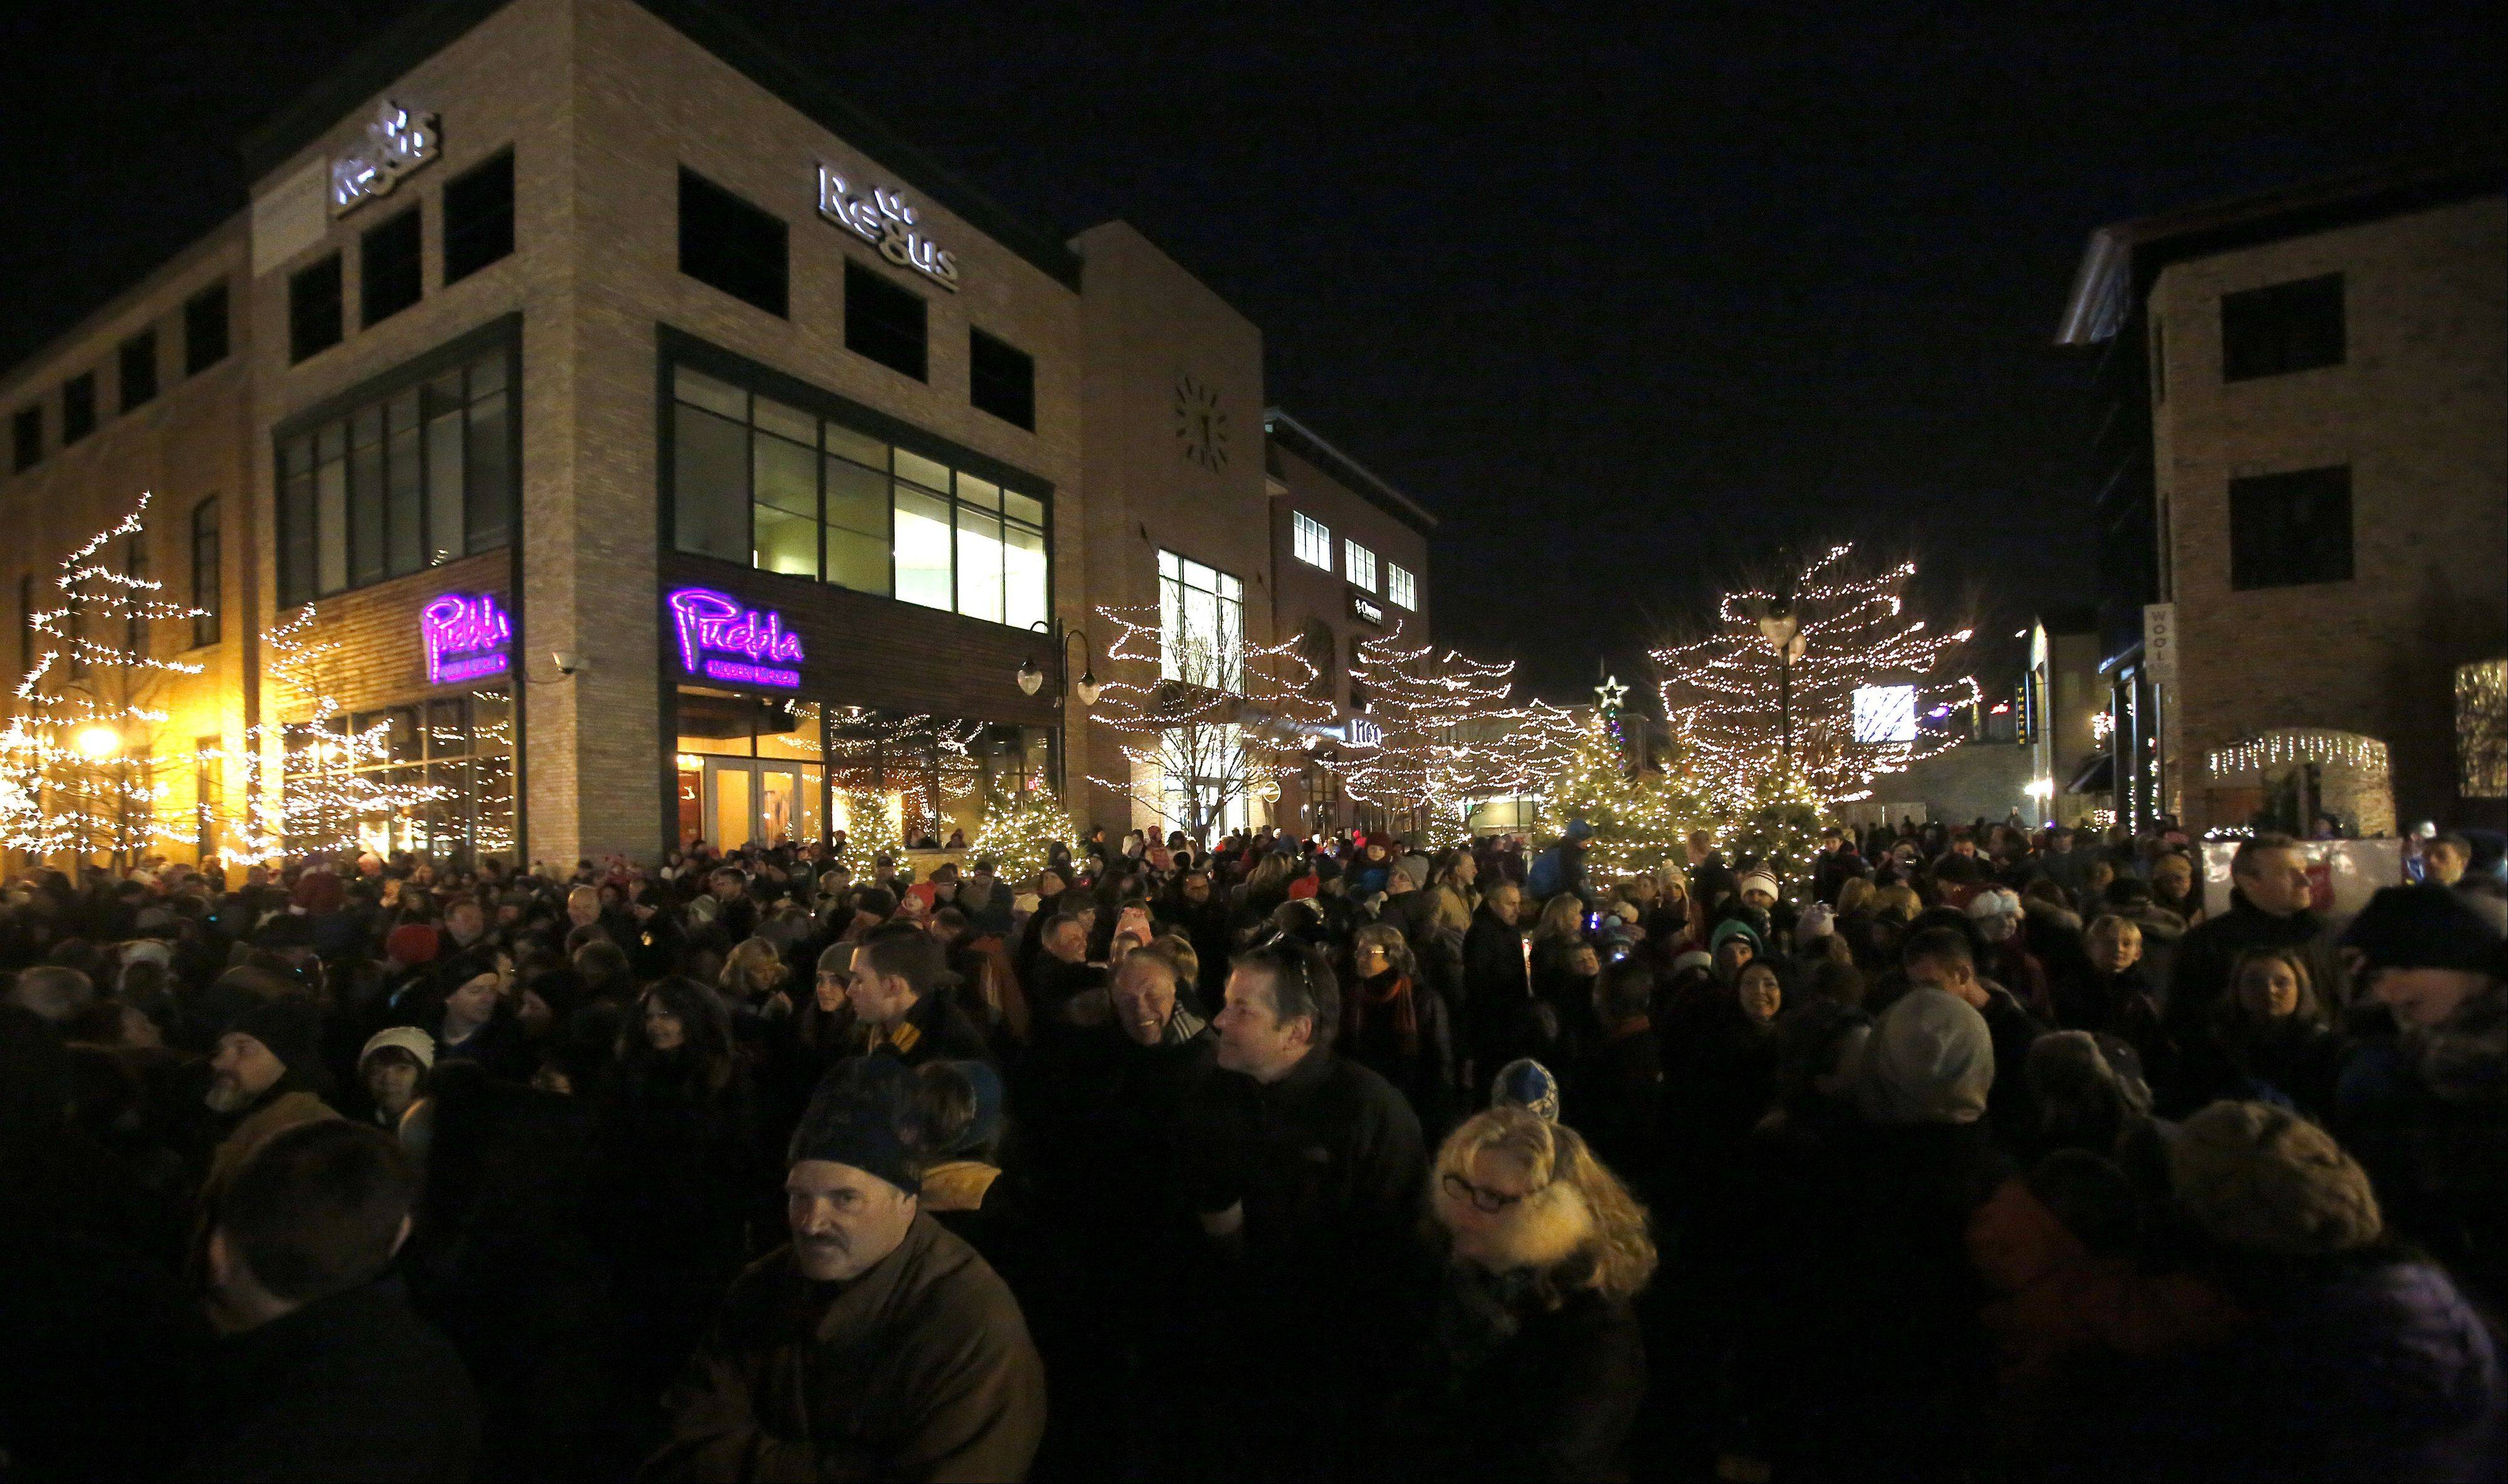 The lights shine brightly after the tree-lighting ceremony Friday at First Street Plaza in St. Charles.